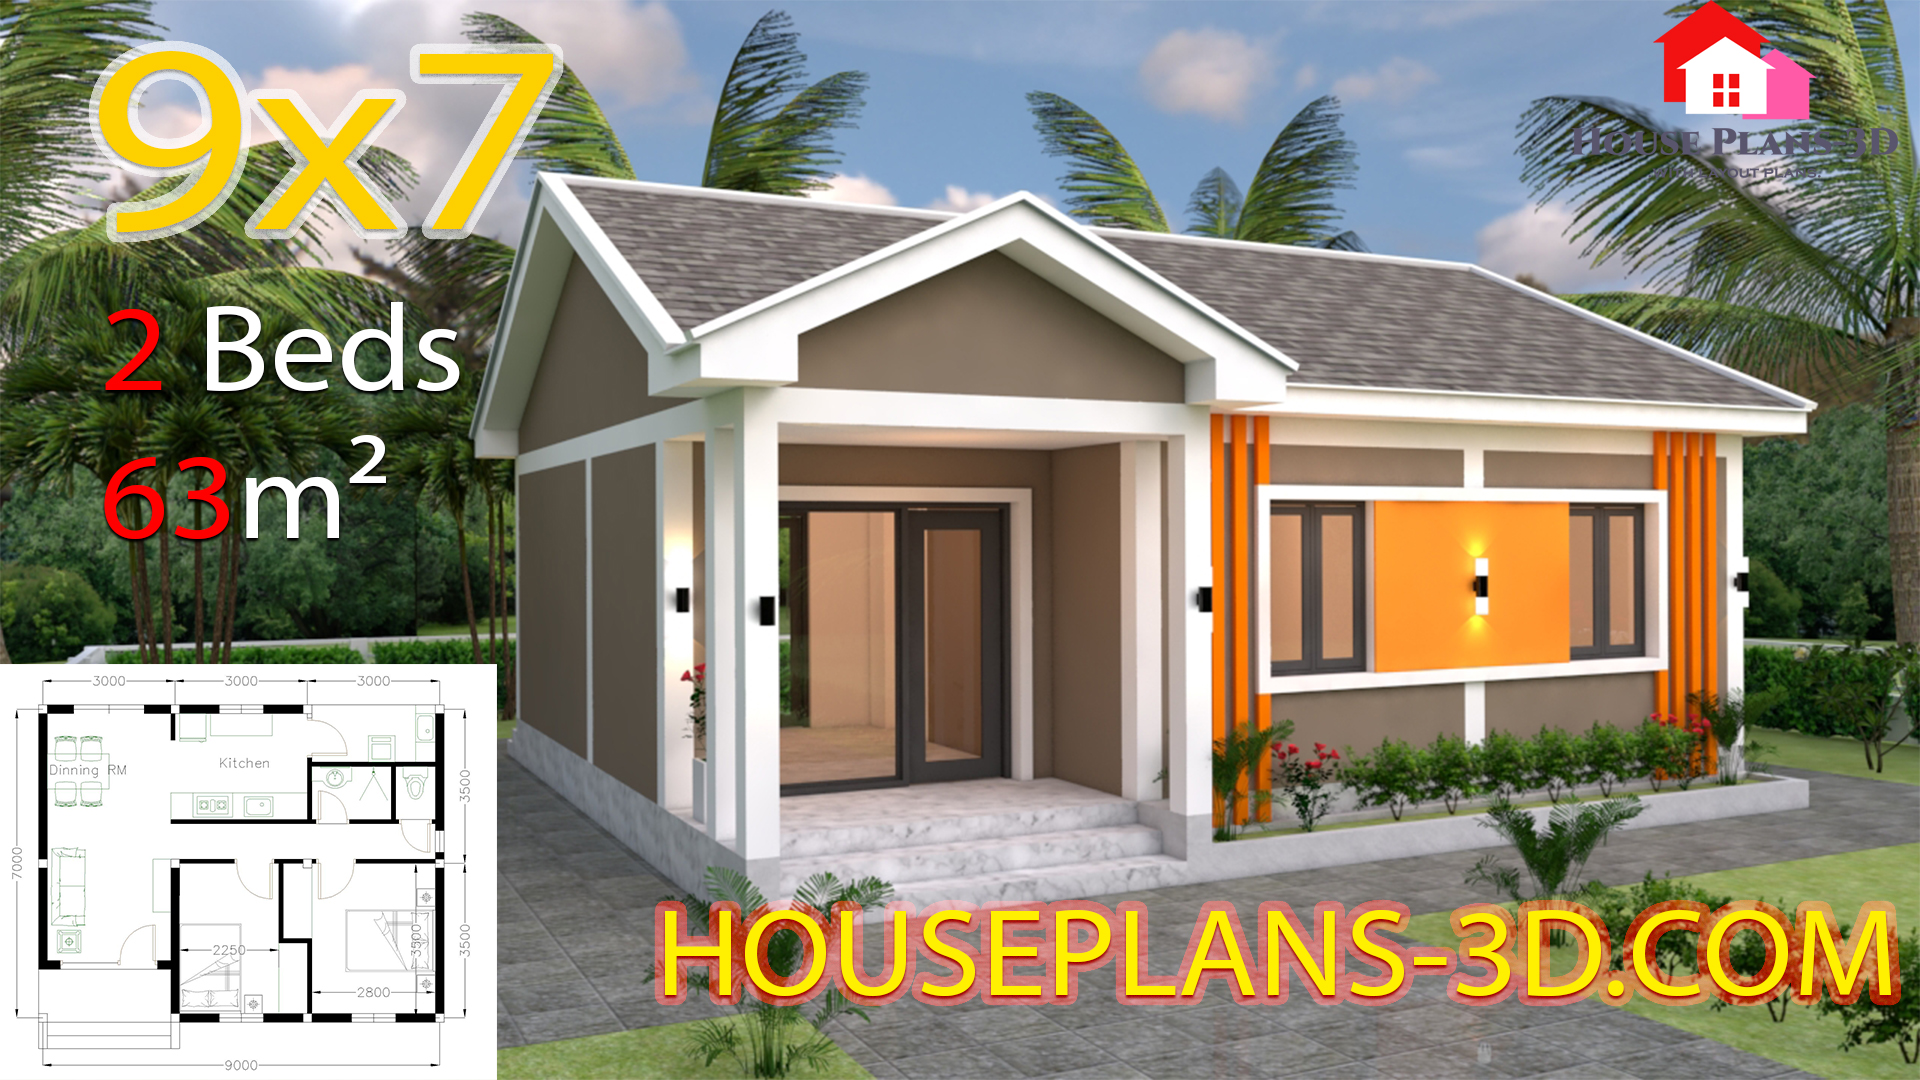 House Plans 9x7 With 2 Bedrooms Gable Roof House Plans 3d